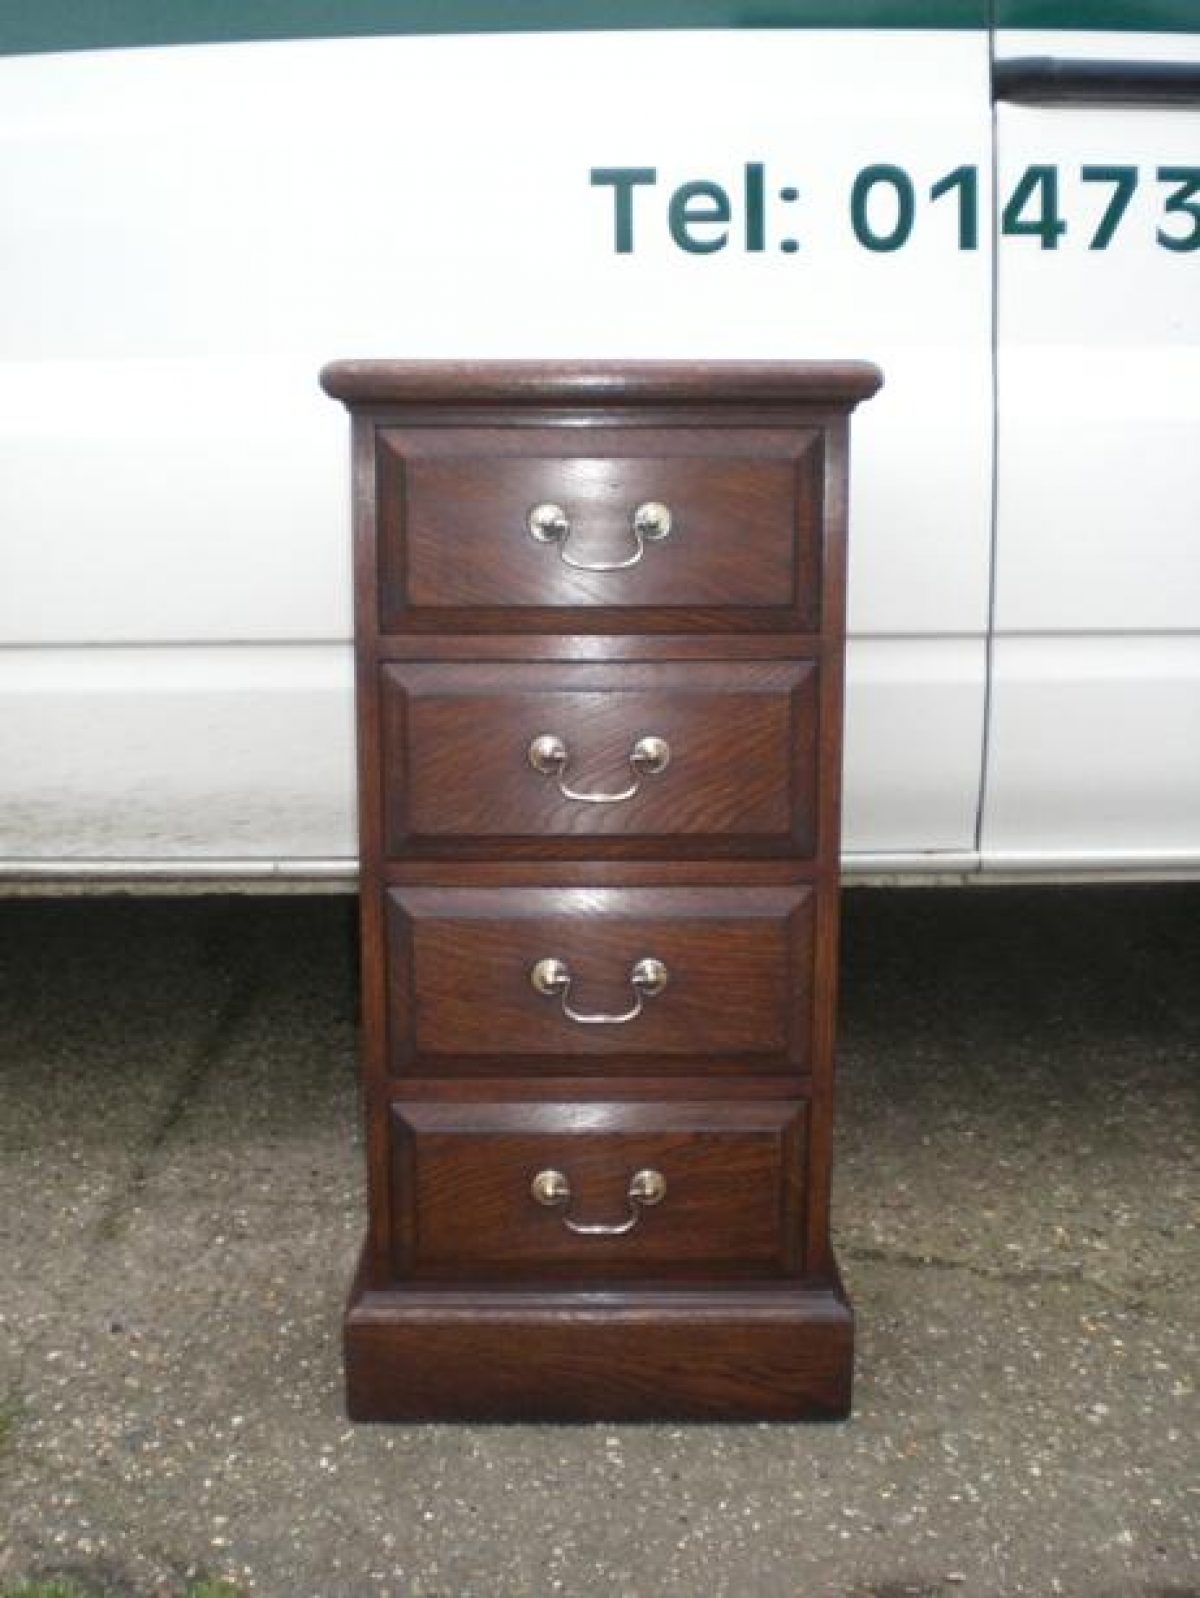 Bespoke Tower Chest of Drawers Handcrafted in Suffolk